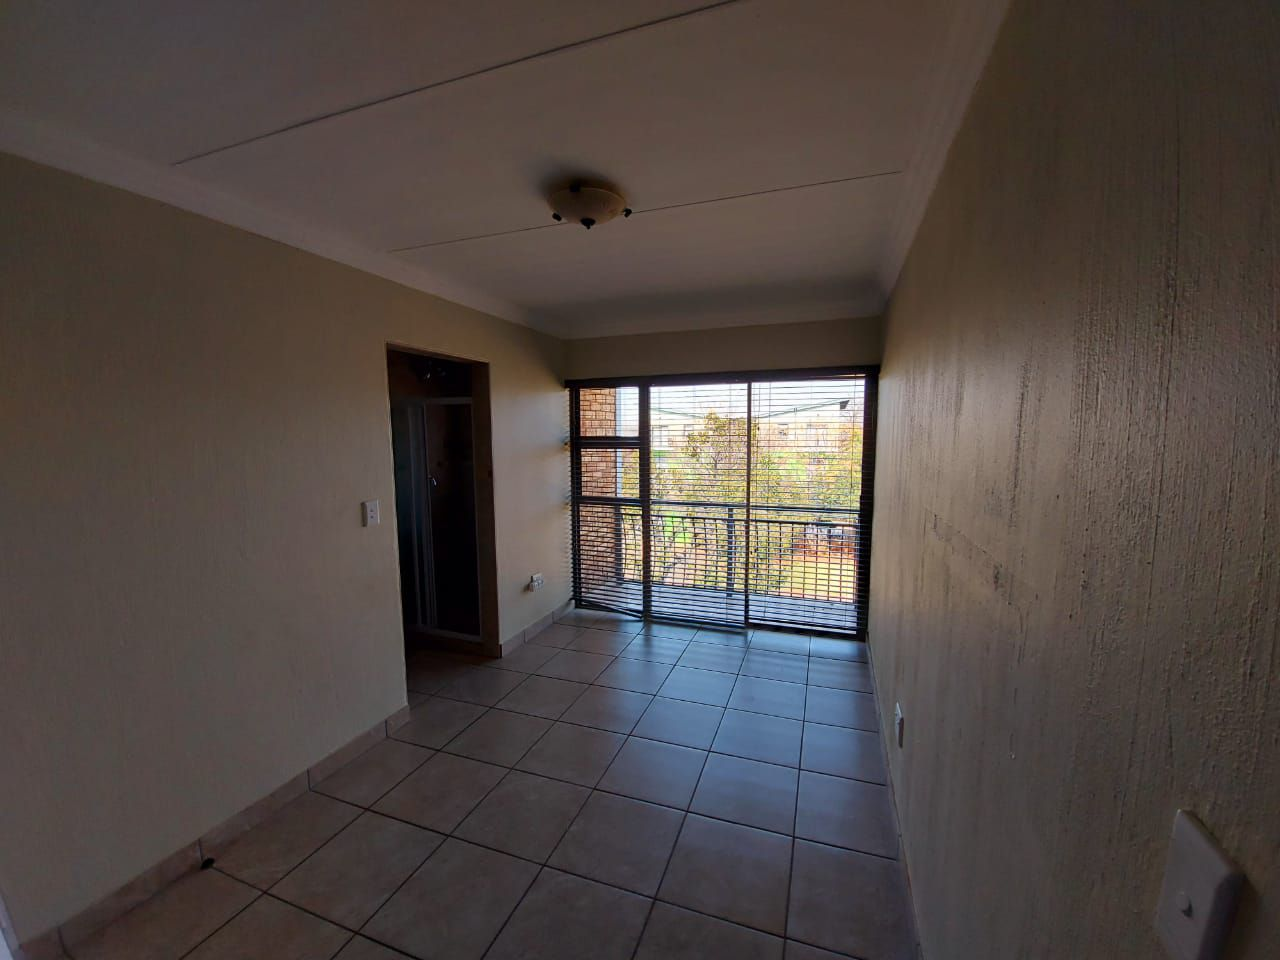 Apartment in Bult - WhatsApp Image 2020-08-17 at 13.25.39 (4).jpeg